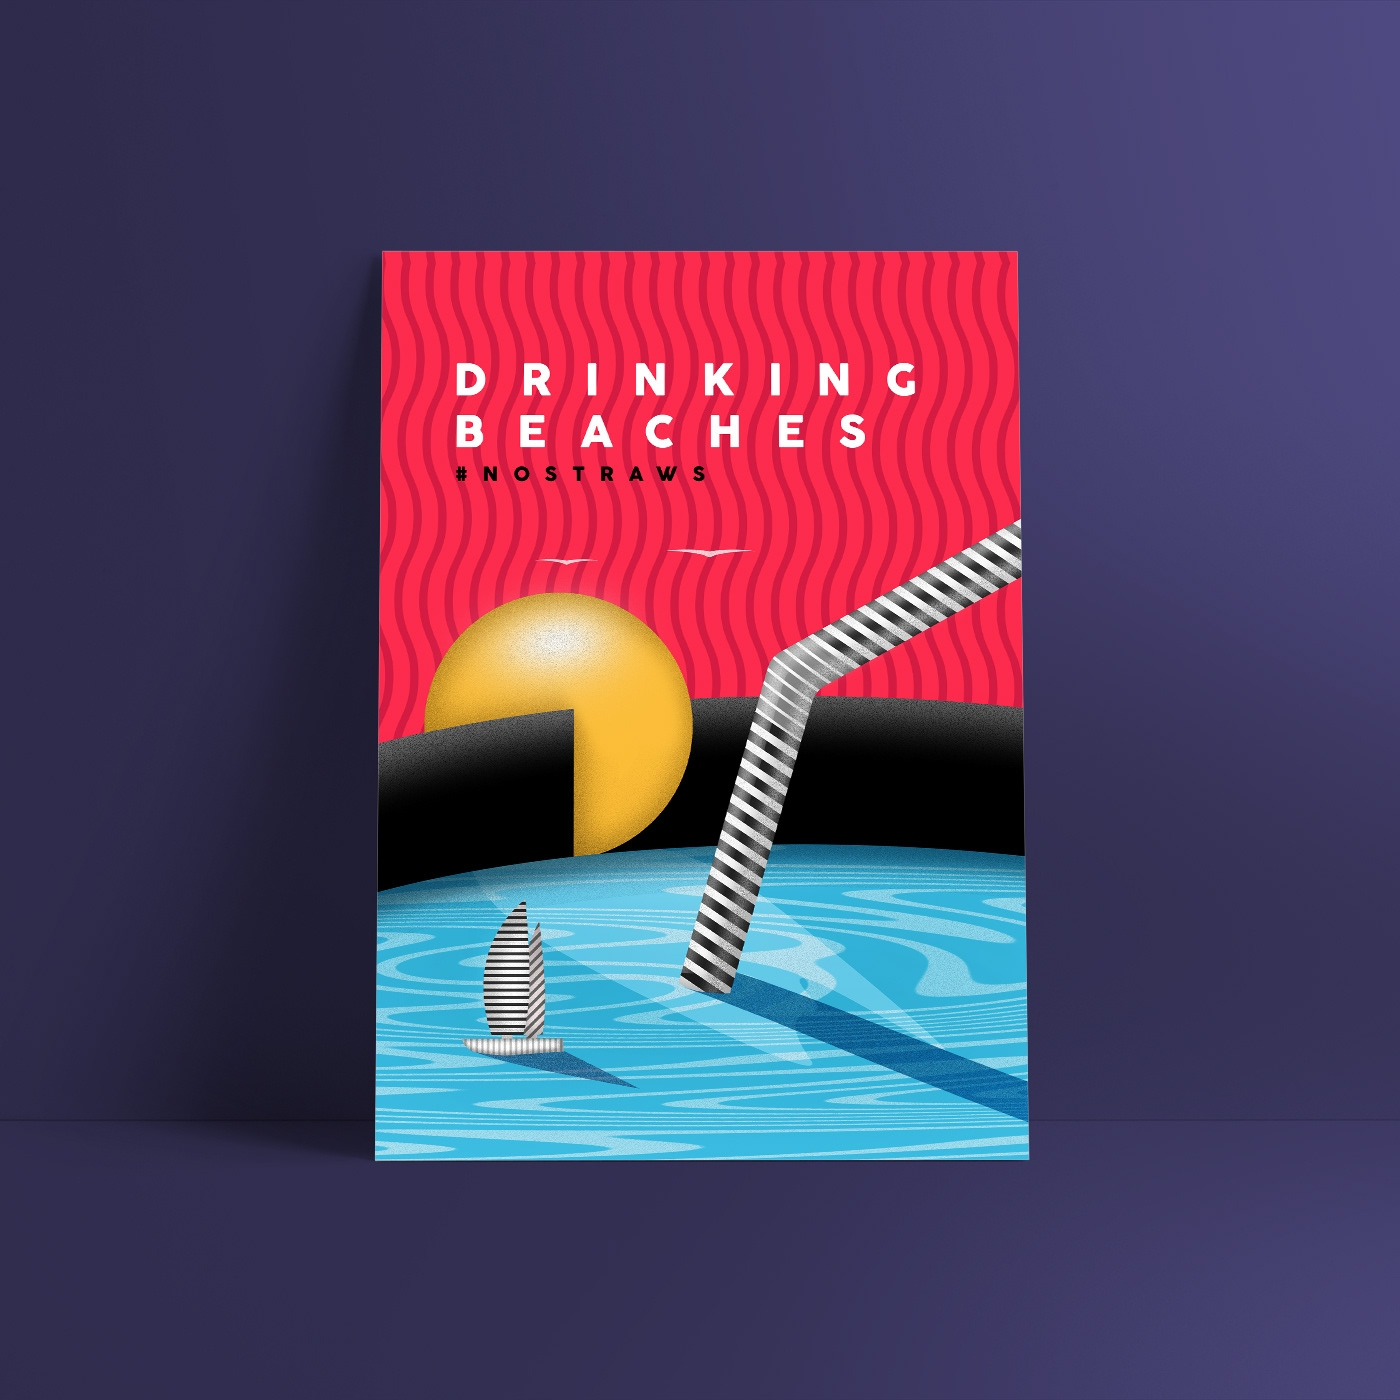 Drinking Beaches: plastic sea b - wallendiaz | ello